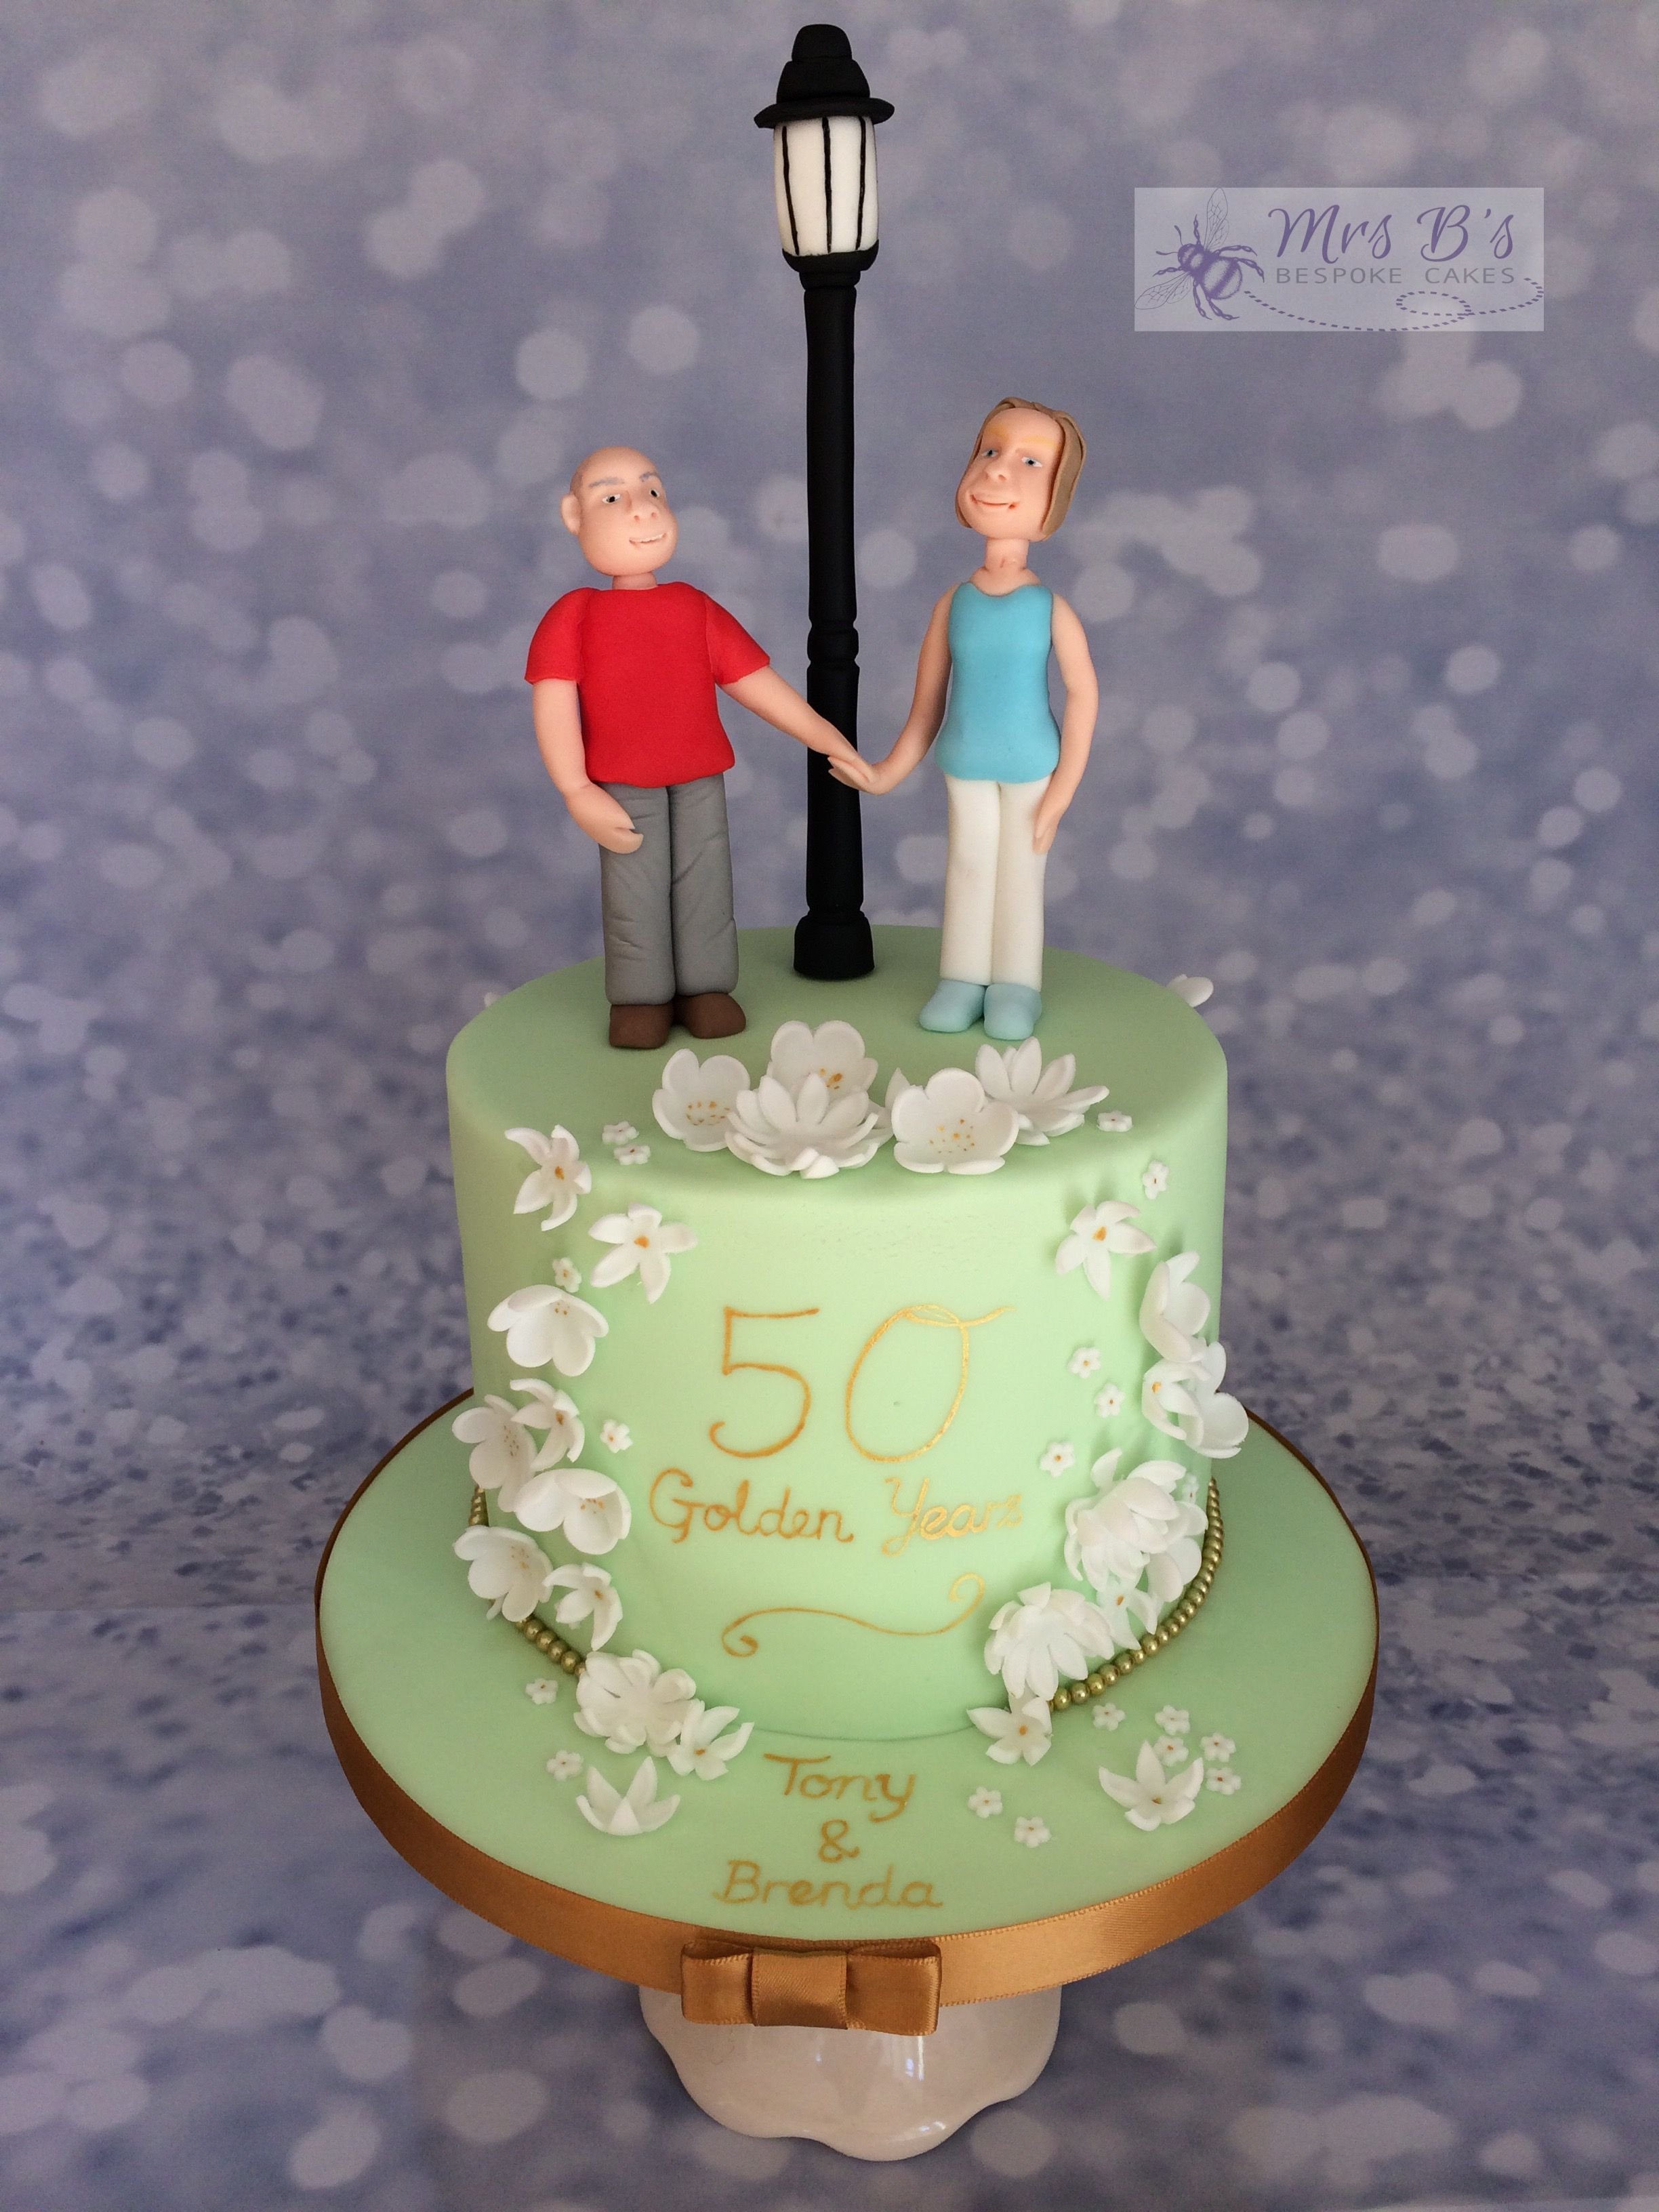 Golden Wedding Anniversary Cake With Personality Handcrafted And